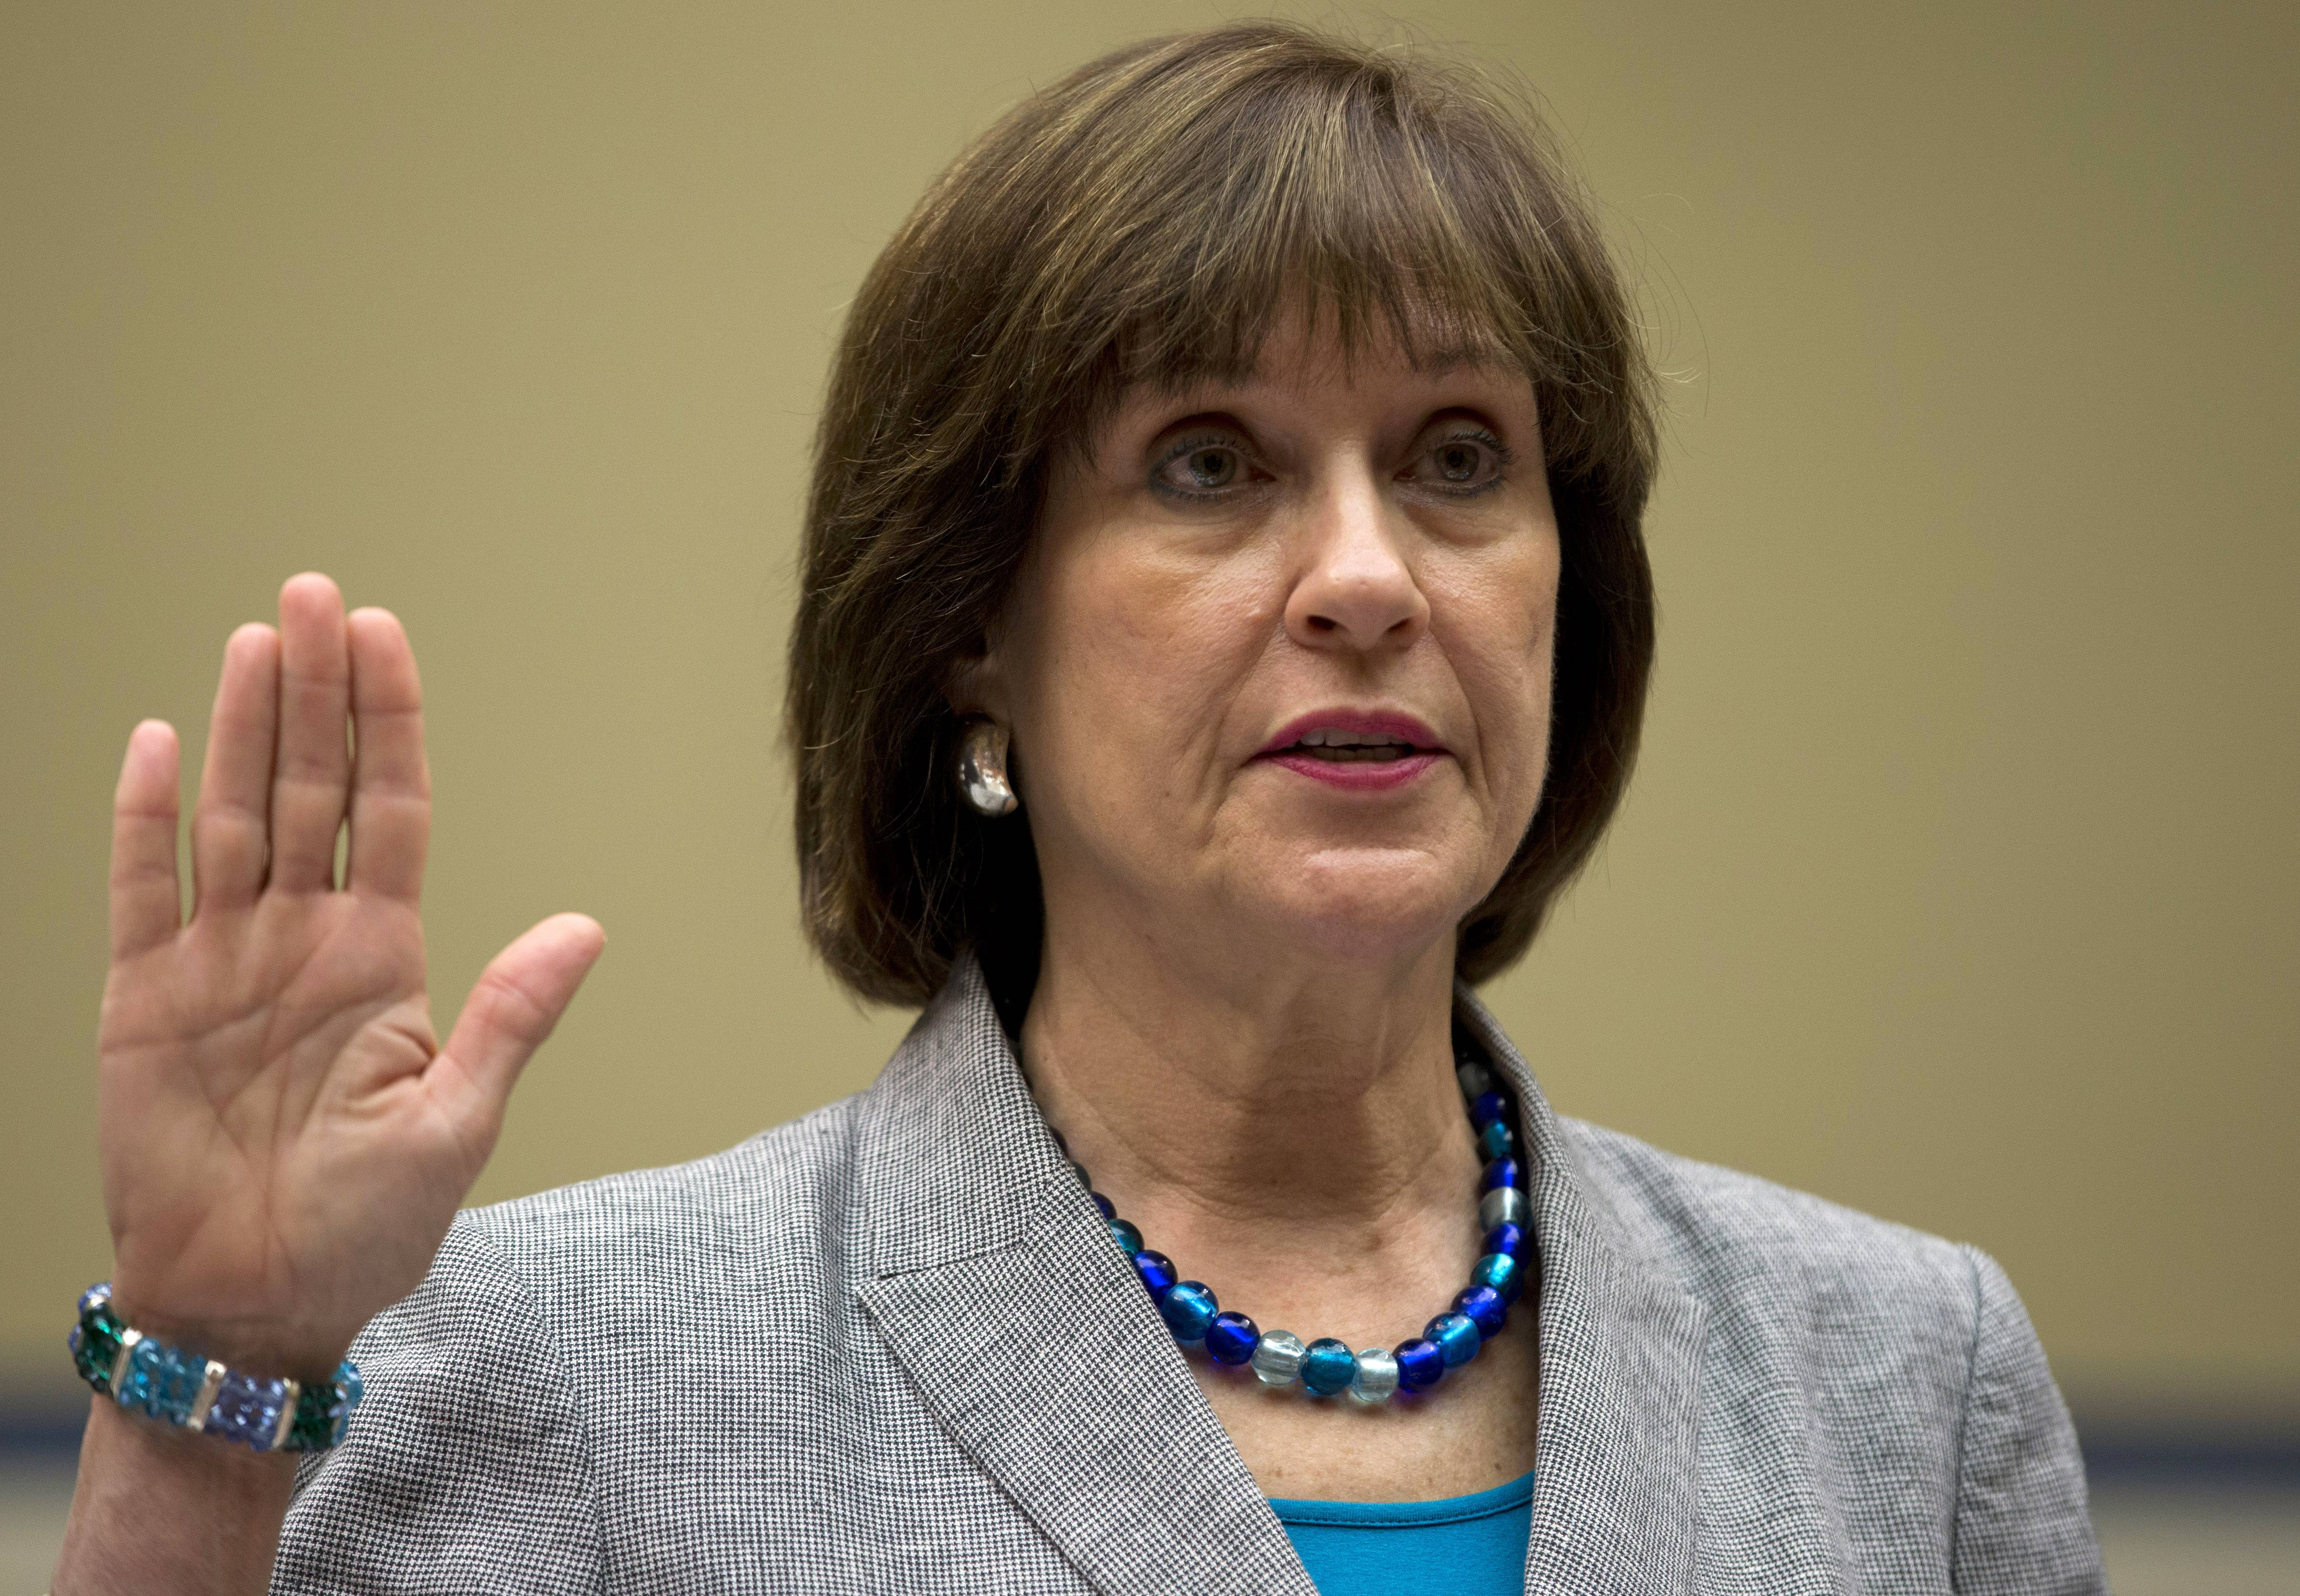 The House on Wednesday voted to hold former IRS official Lois Lerner in contempt of Congress for refusing to testify at a pair of committee hearings about her role in the agency's Tea Party controversy.